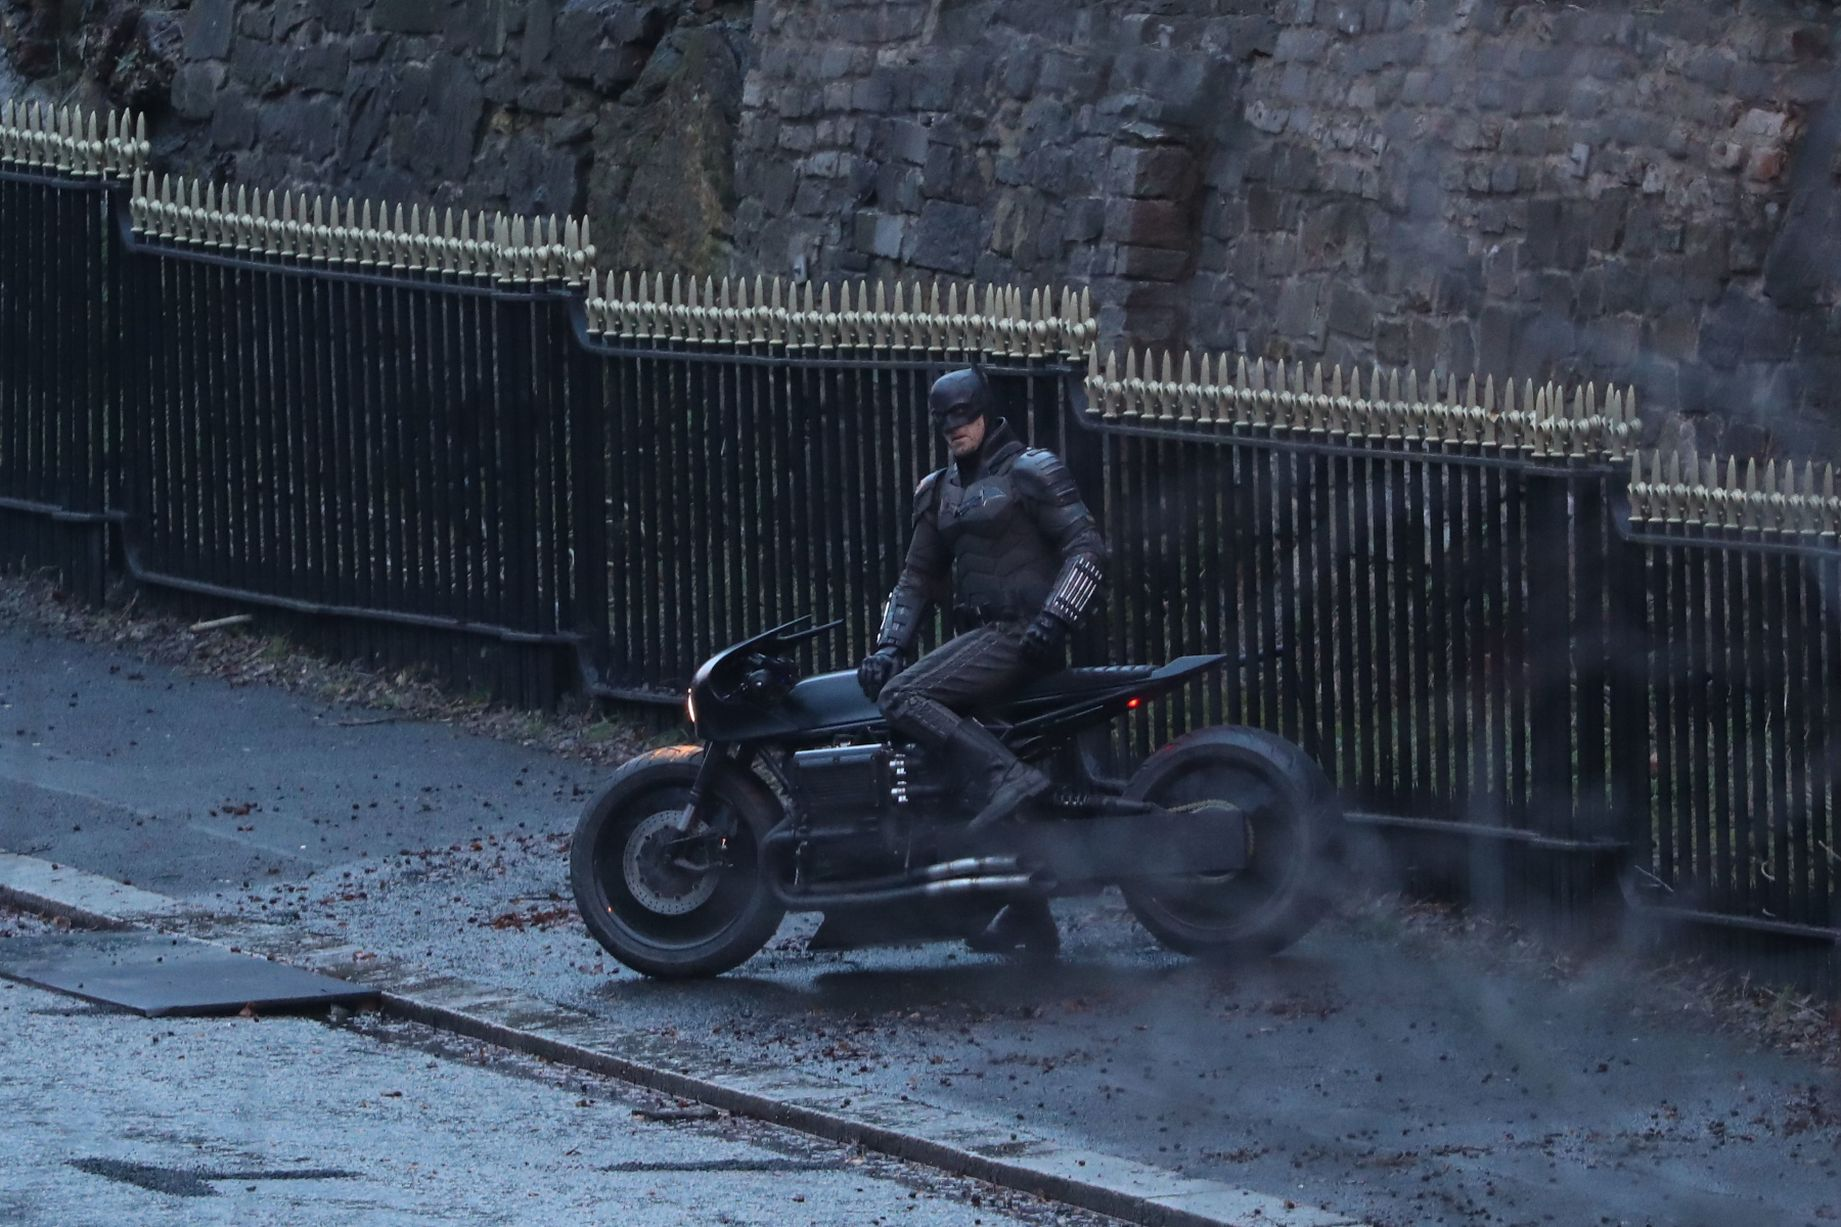 """A stuntman dressed as Batman looks cool atop the Batcycle during filming for """"The Batman""""."""